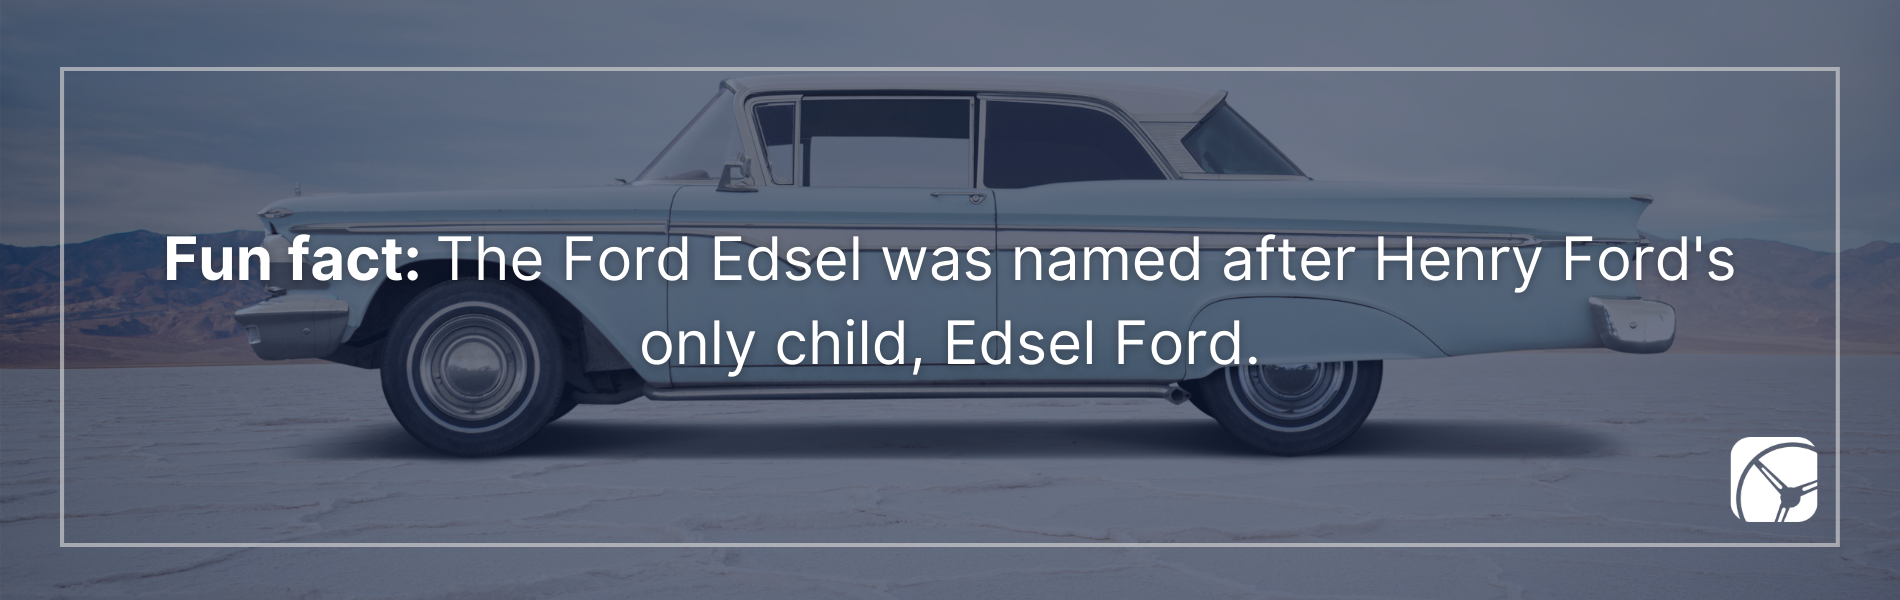 Fun fact: Henry Ford's son, the chairman of Ford Motor Company, Edsel Ford, strongly believed that the Volkswagen Beetle had no market in the U.S. Years later, he was proven wrong.